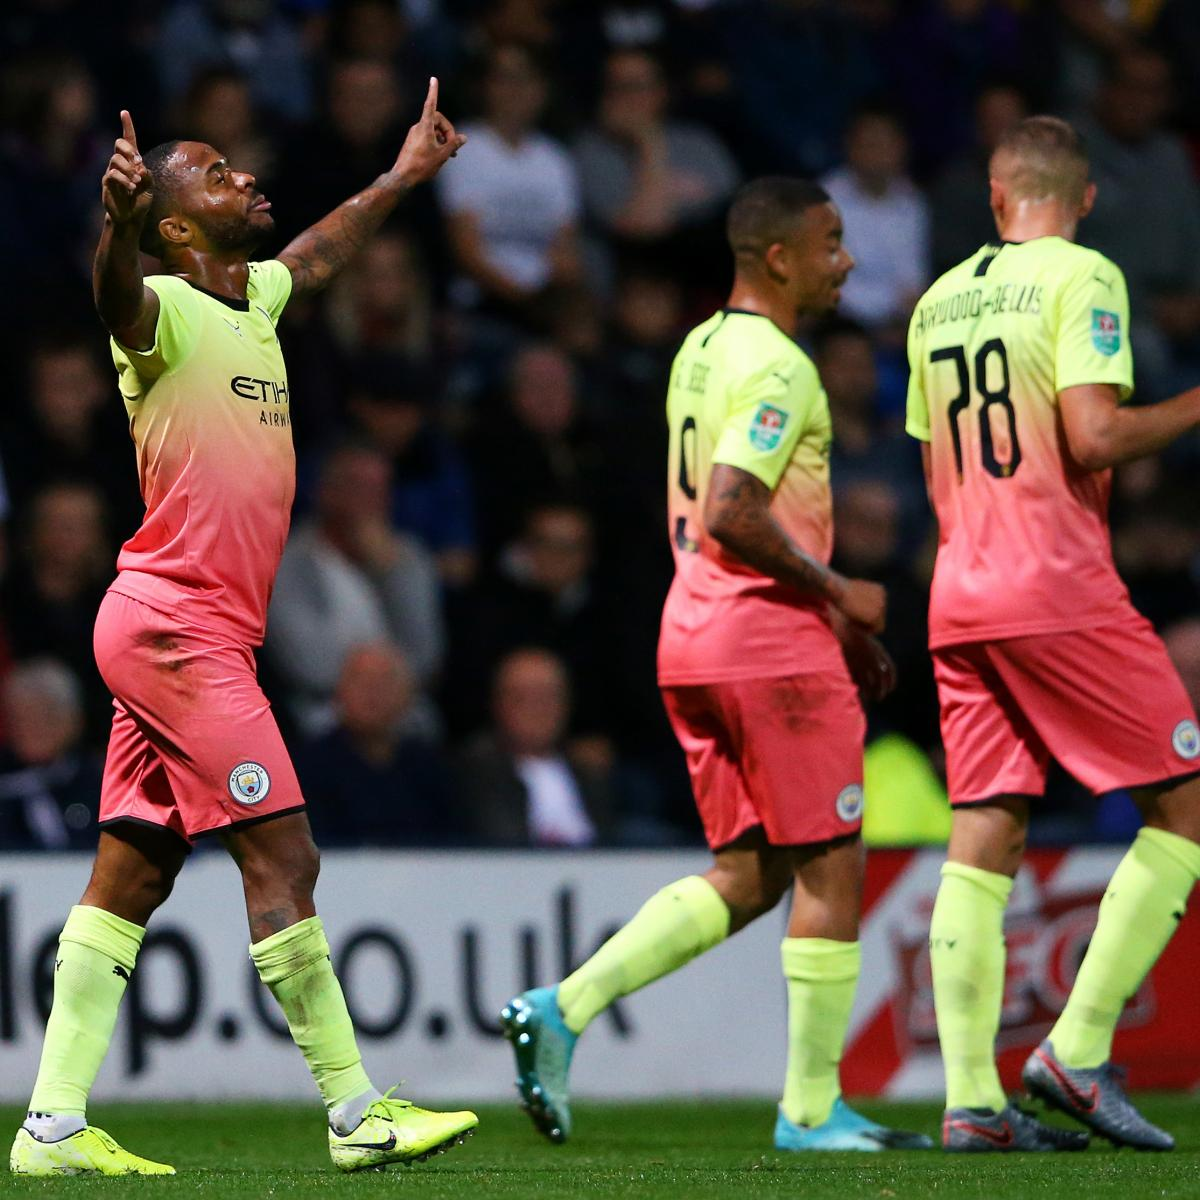 EFL Cup Results 2019: Scores, Highlights from Tuesday's 3rd-Round Fixtures